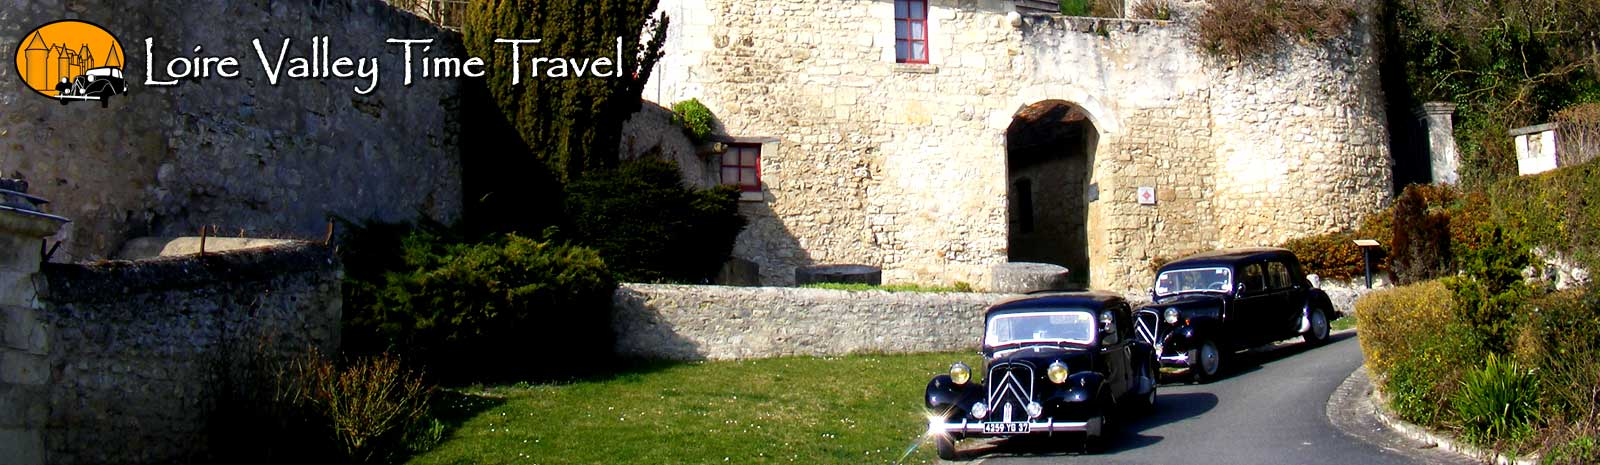 The classic French cars of Loire Valley Time Travel